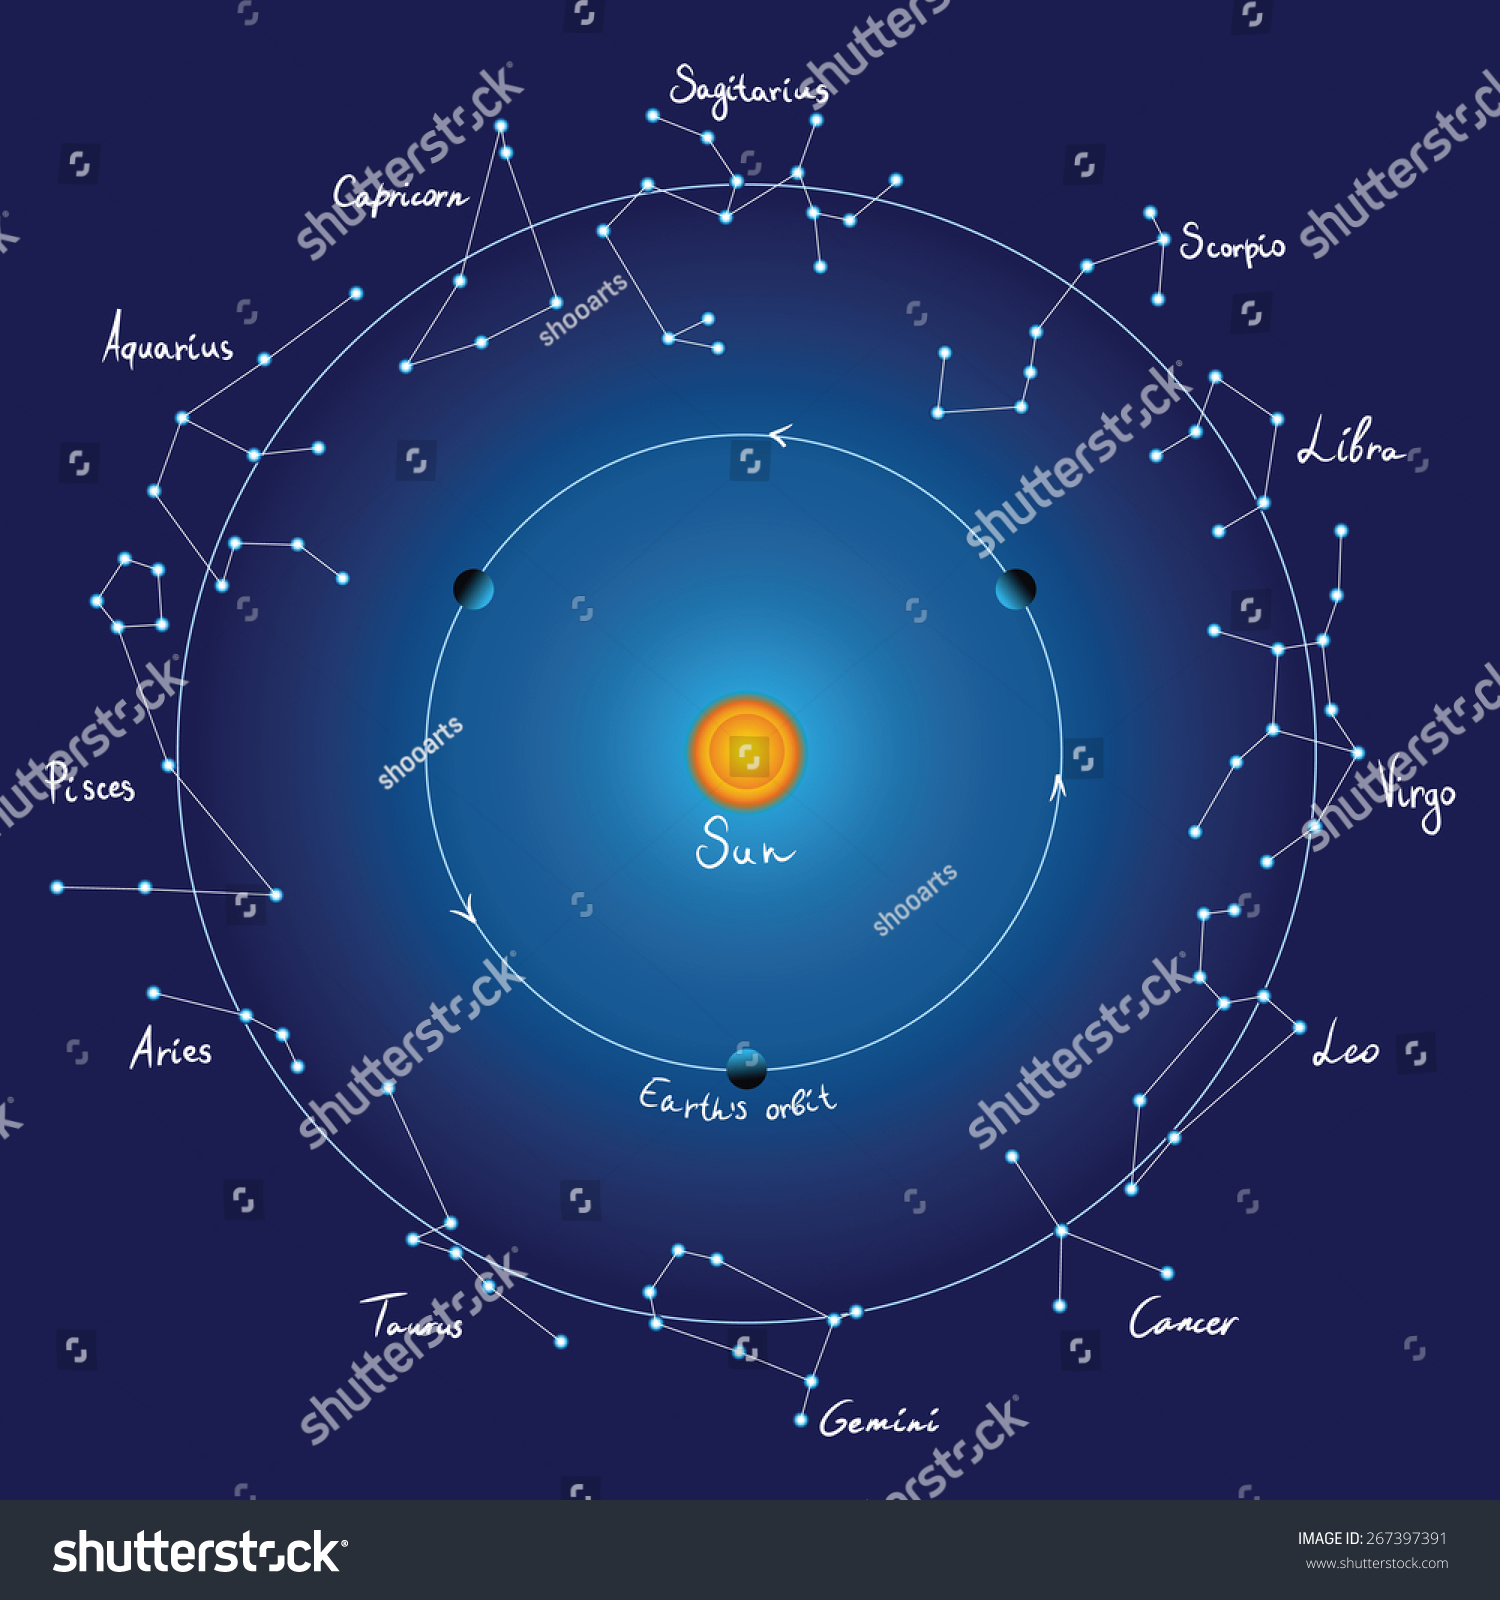 Sky Map And Zodiac Constellations With Titles EZ Canvas - Zodiac constellations map